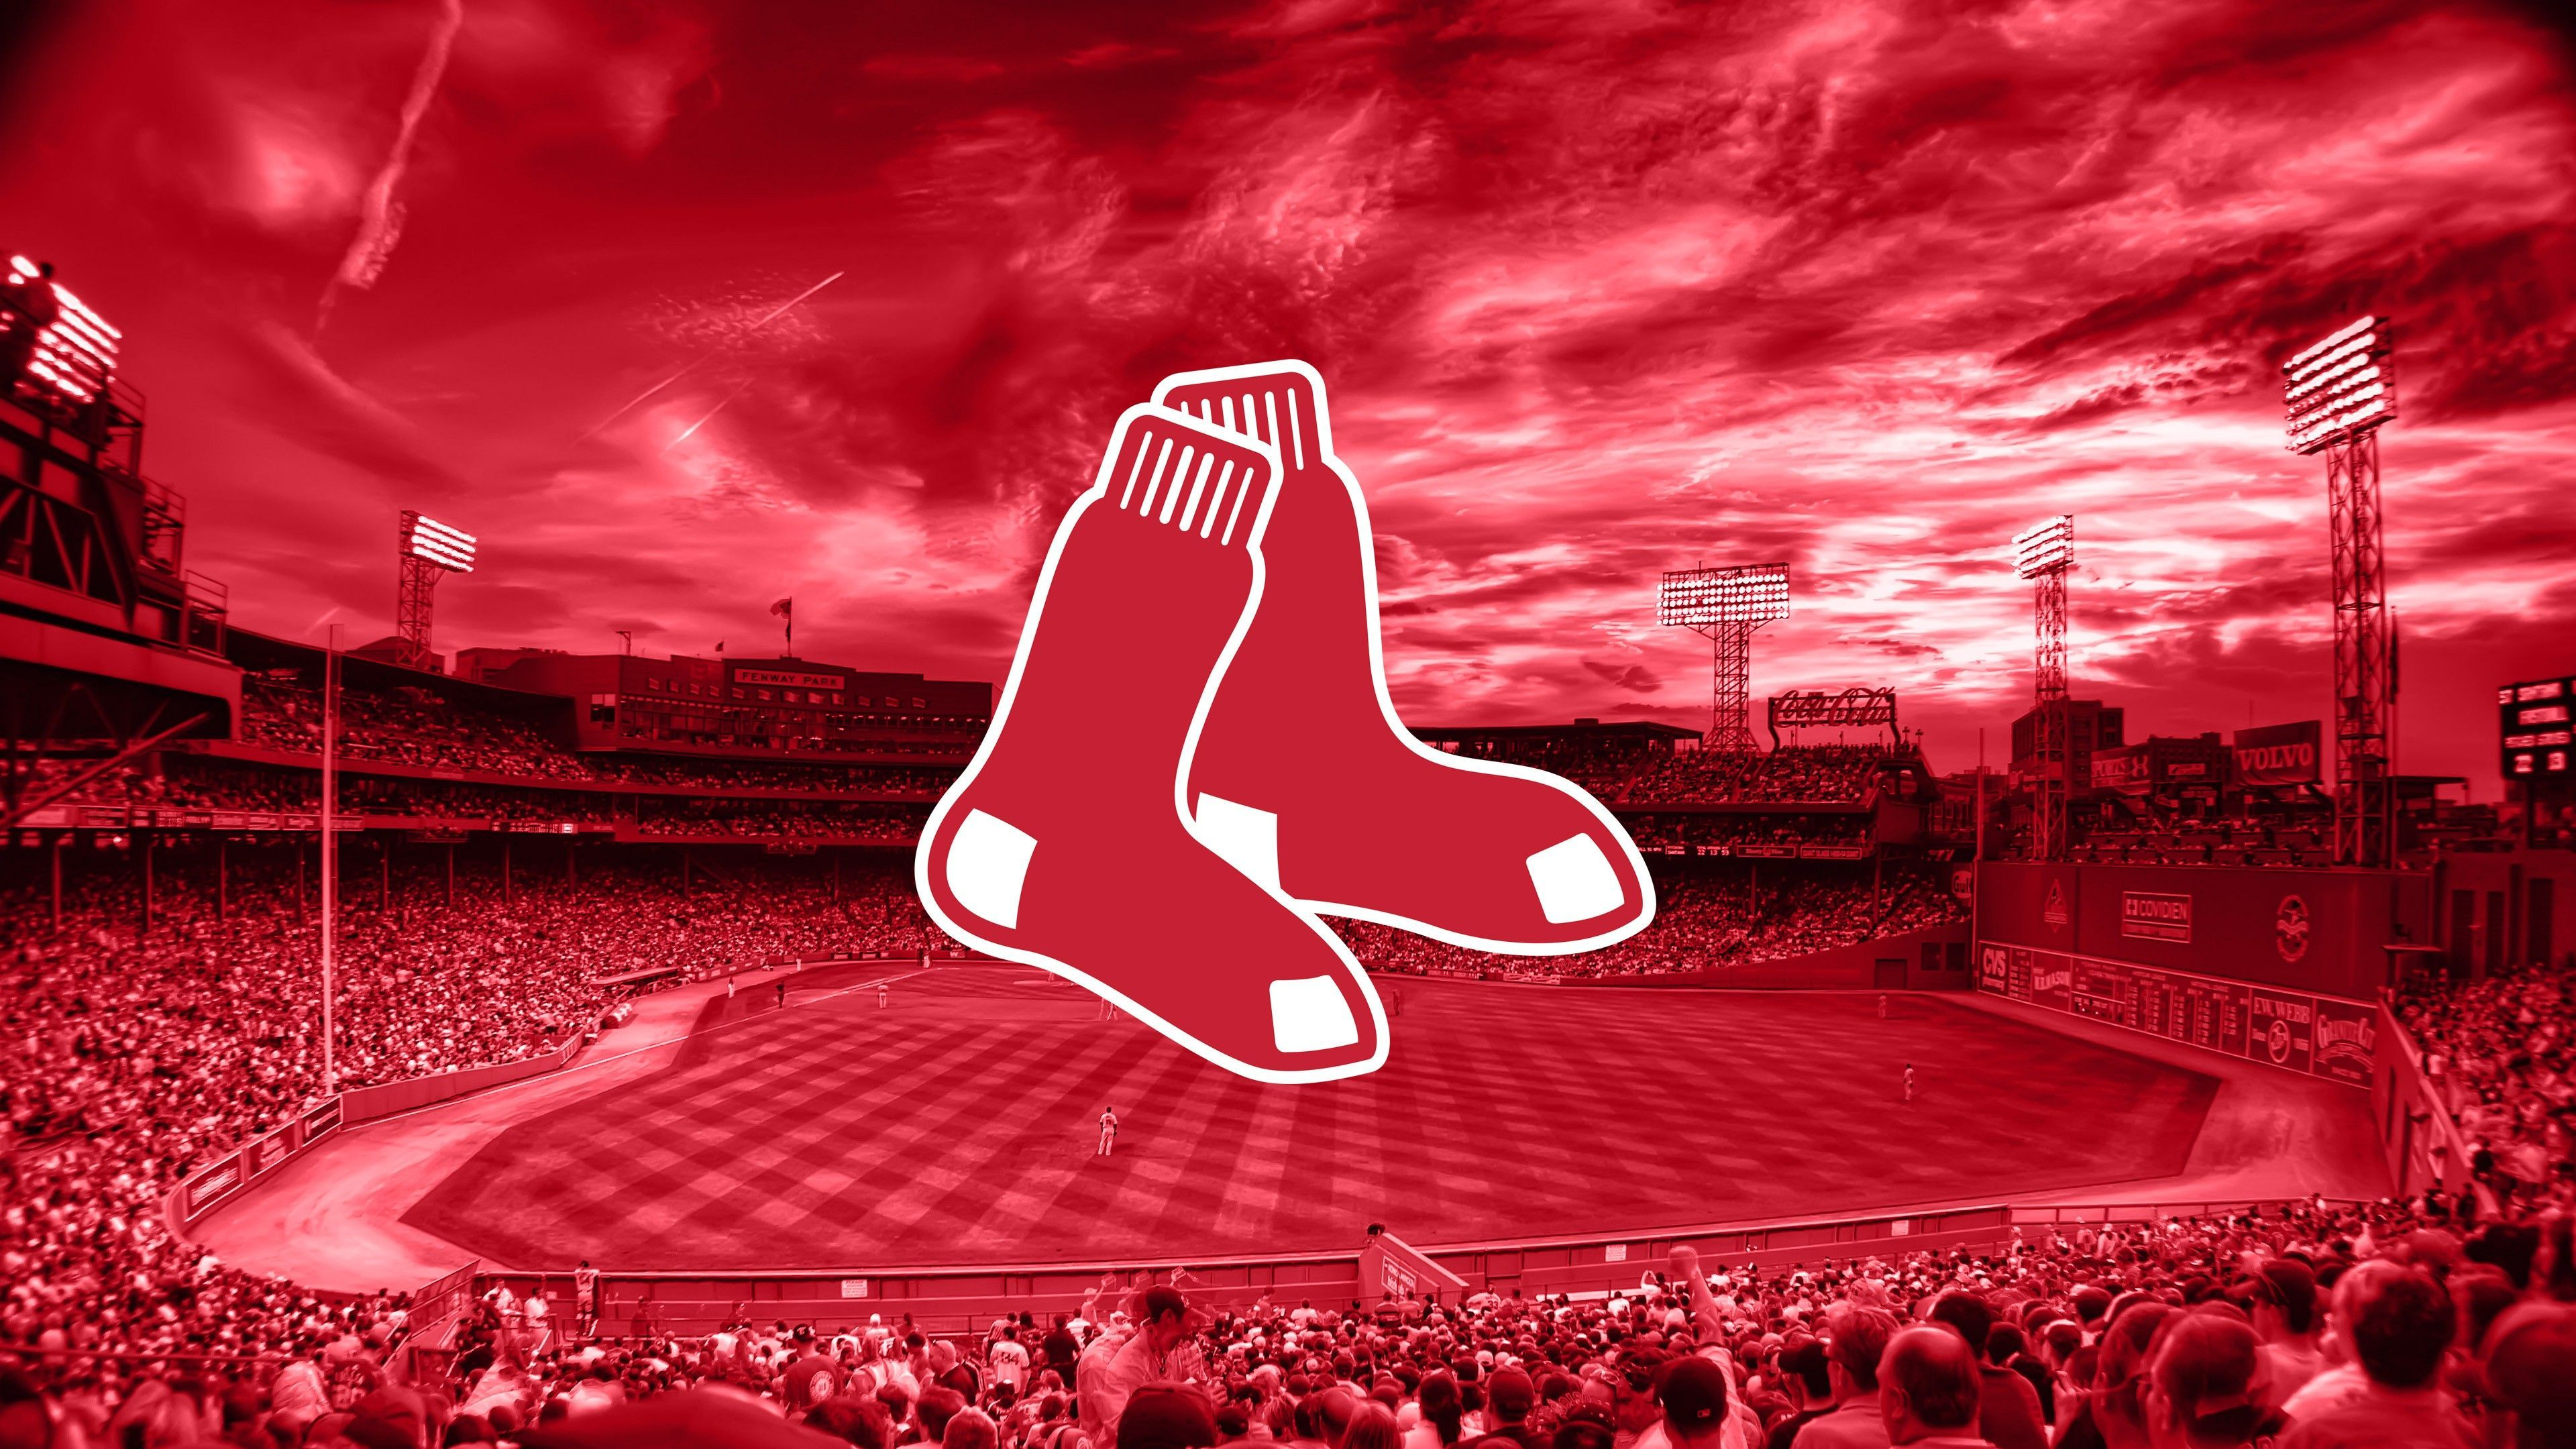 50+ Cool Red Sox Wallpapers Download at WallpaperBro